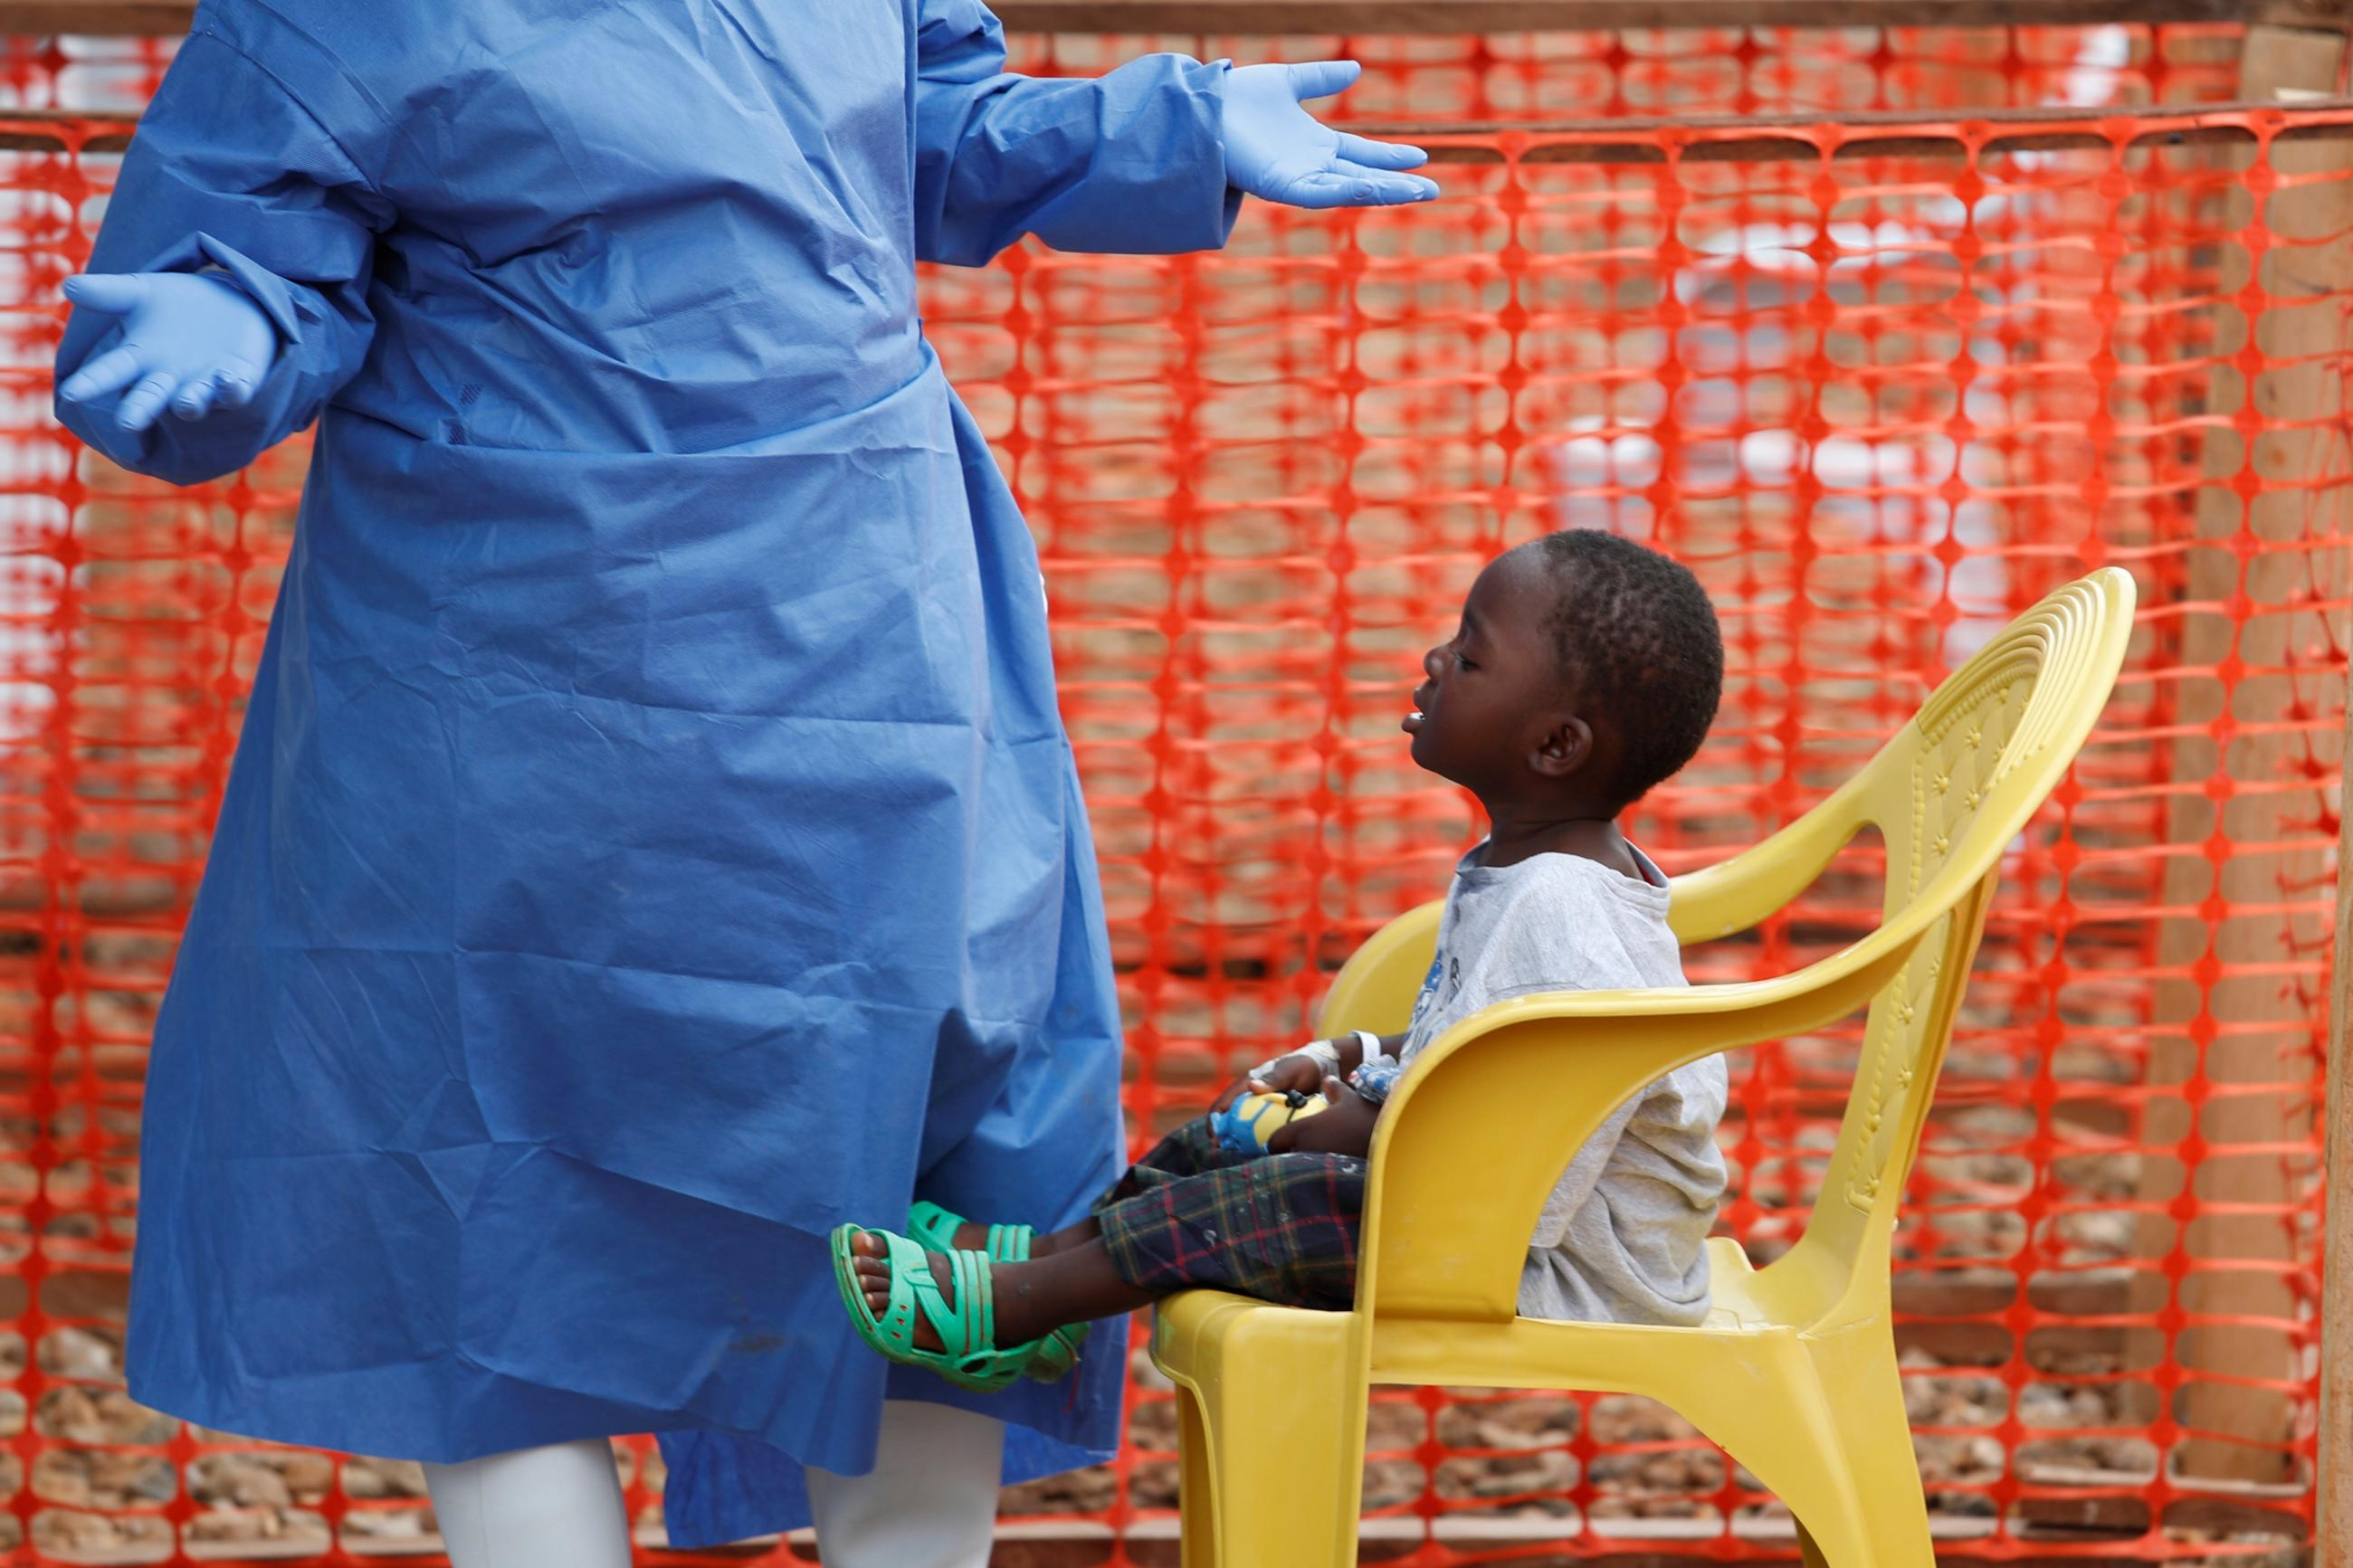 An Ebola survivor plays with a boy suspected of being infected with Ebola virus in a transit centre in Beni, North Kivu Province of Democratic Republic of Congo, December 15, 2018.